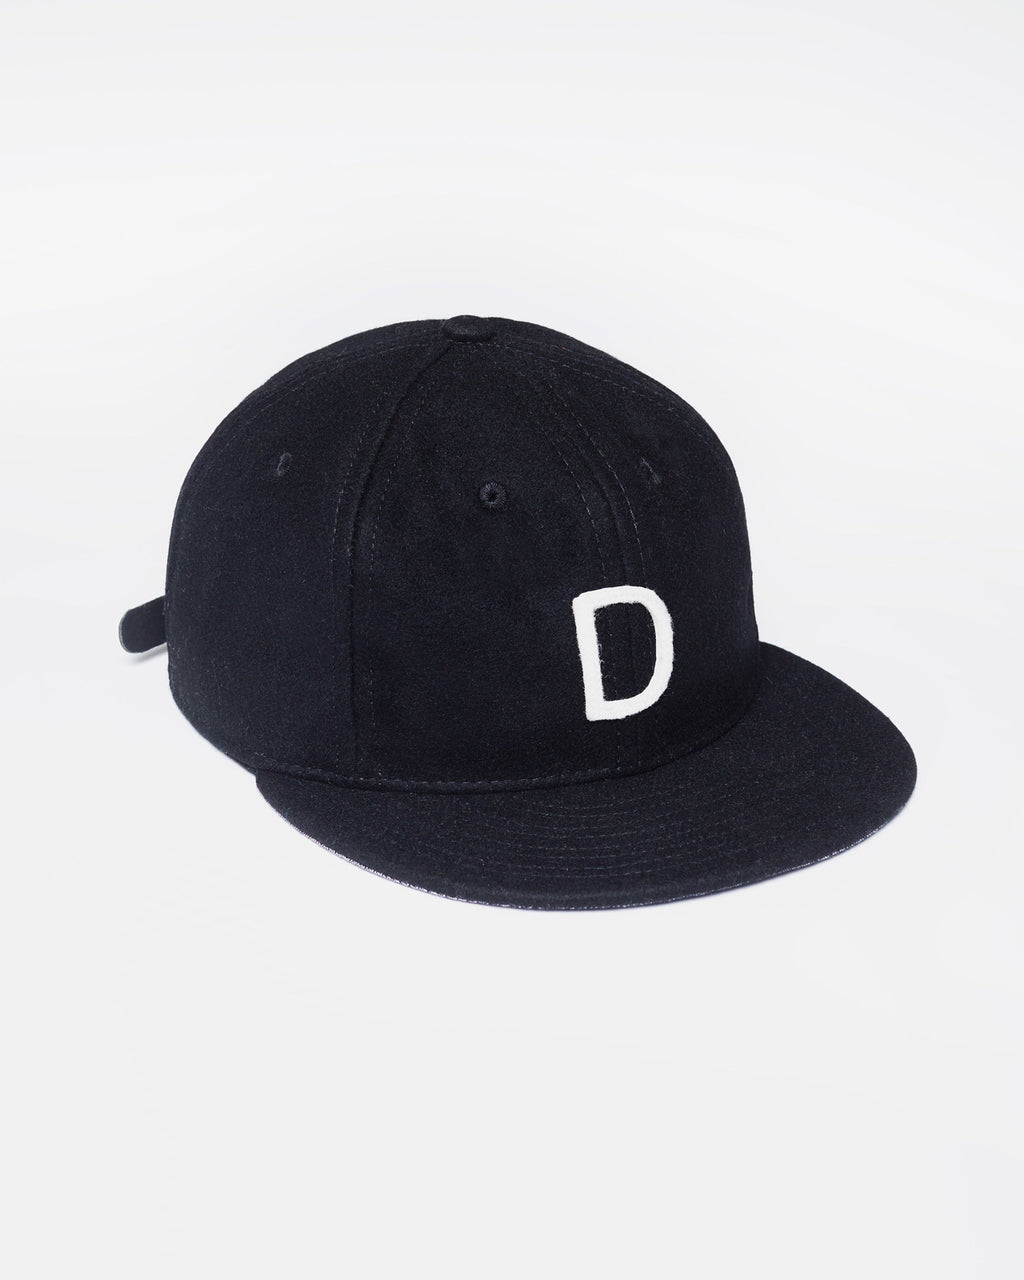 The Dallas Hat Strapback in Black/White